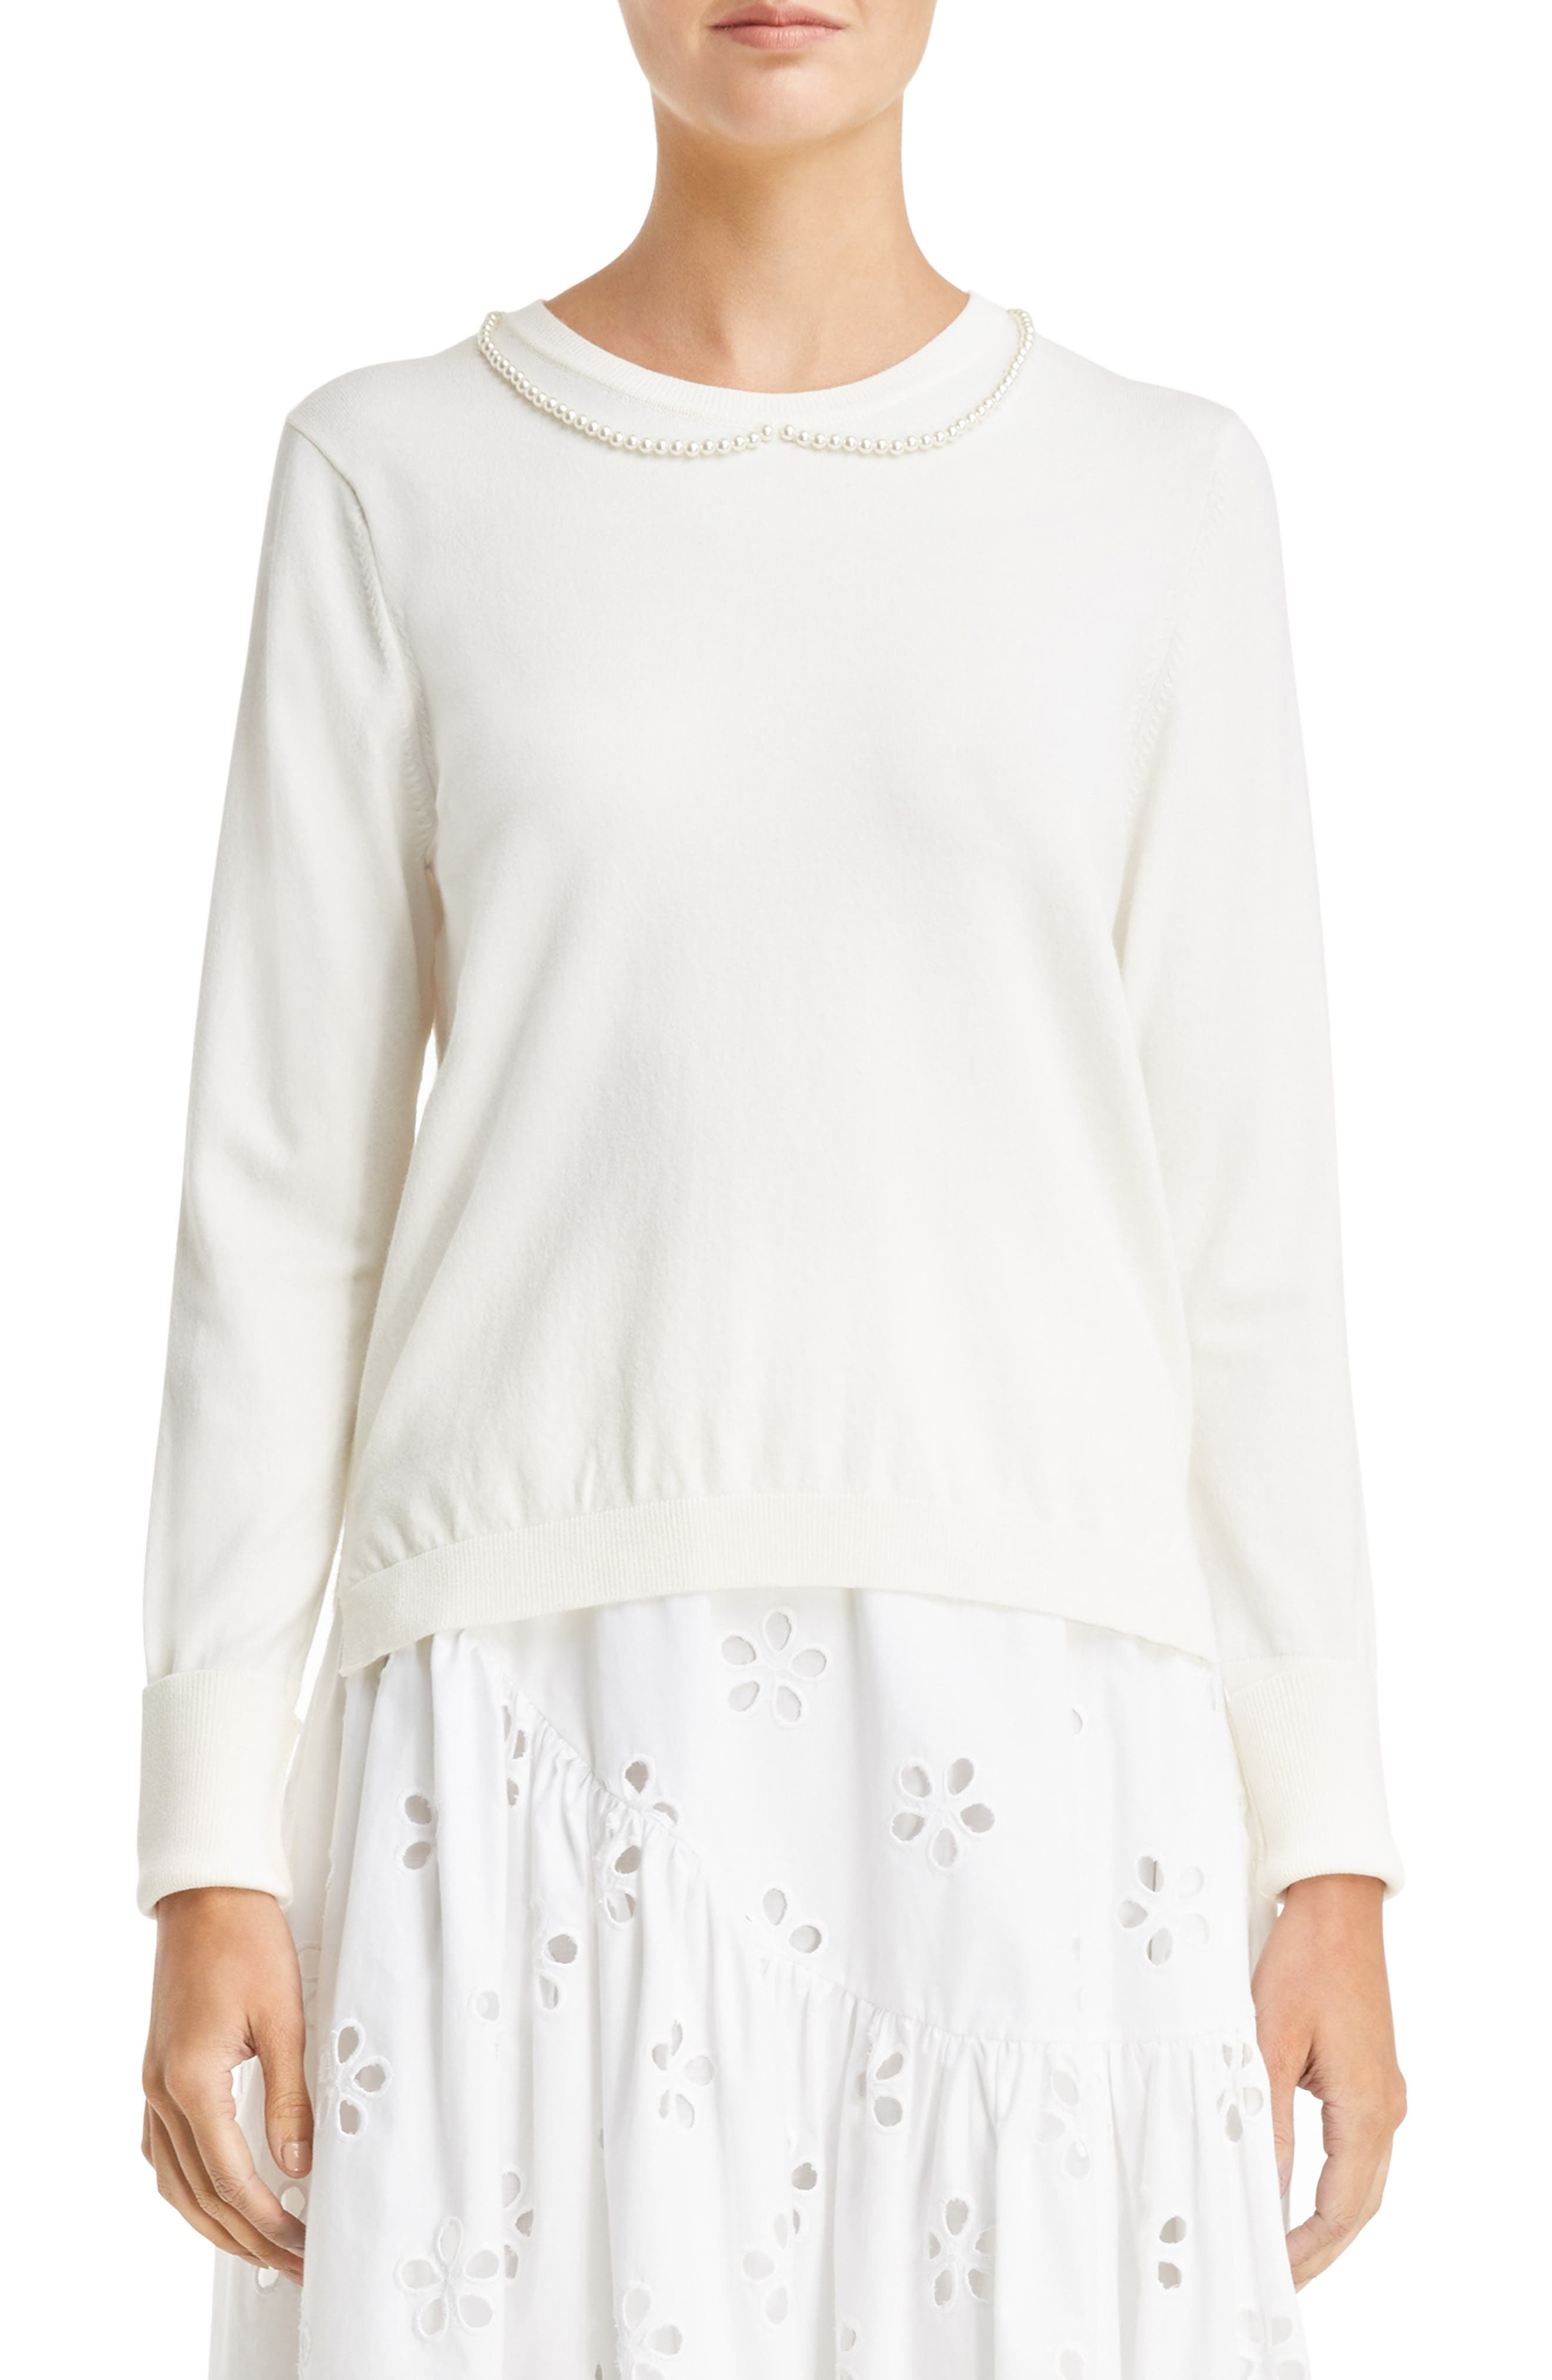 Simone Rocha Imitation Pearl Embellished Sweater